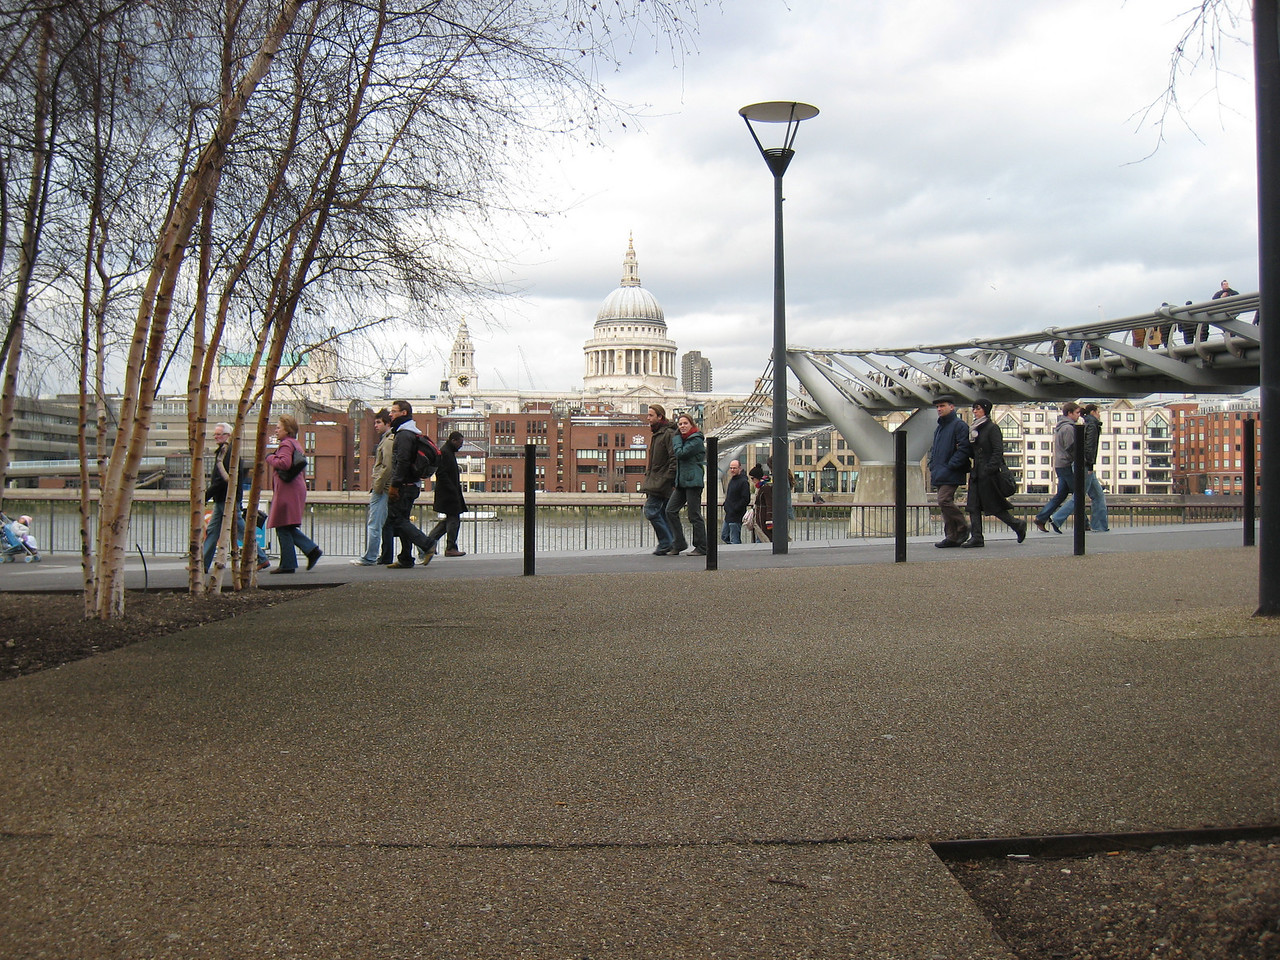 The millenium bridge from the Tate Modern